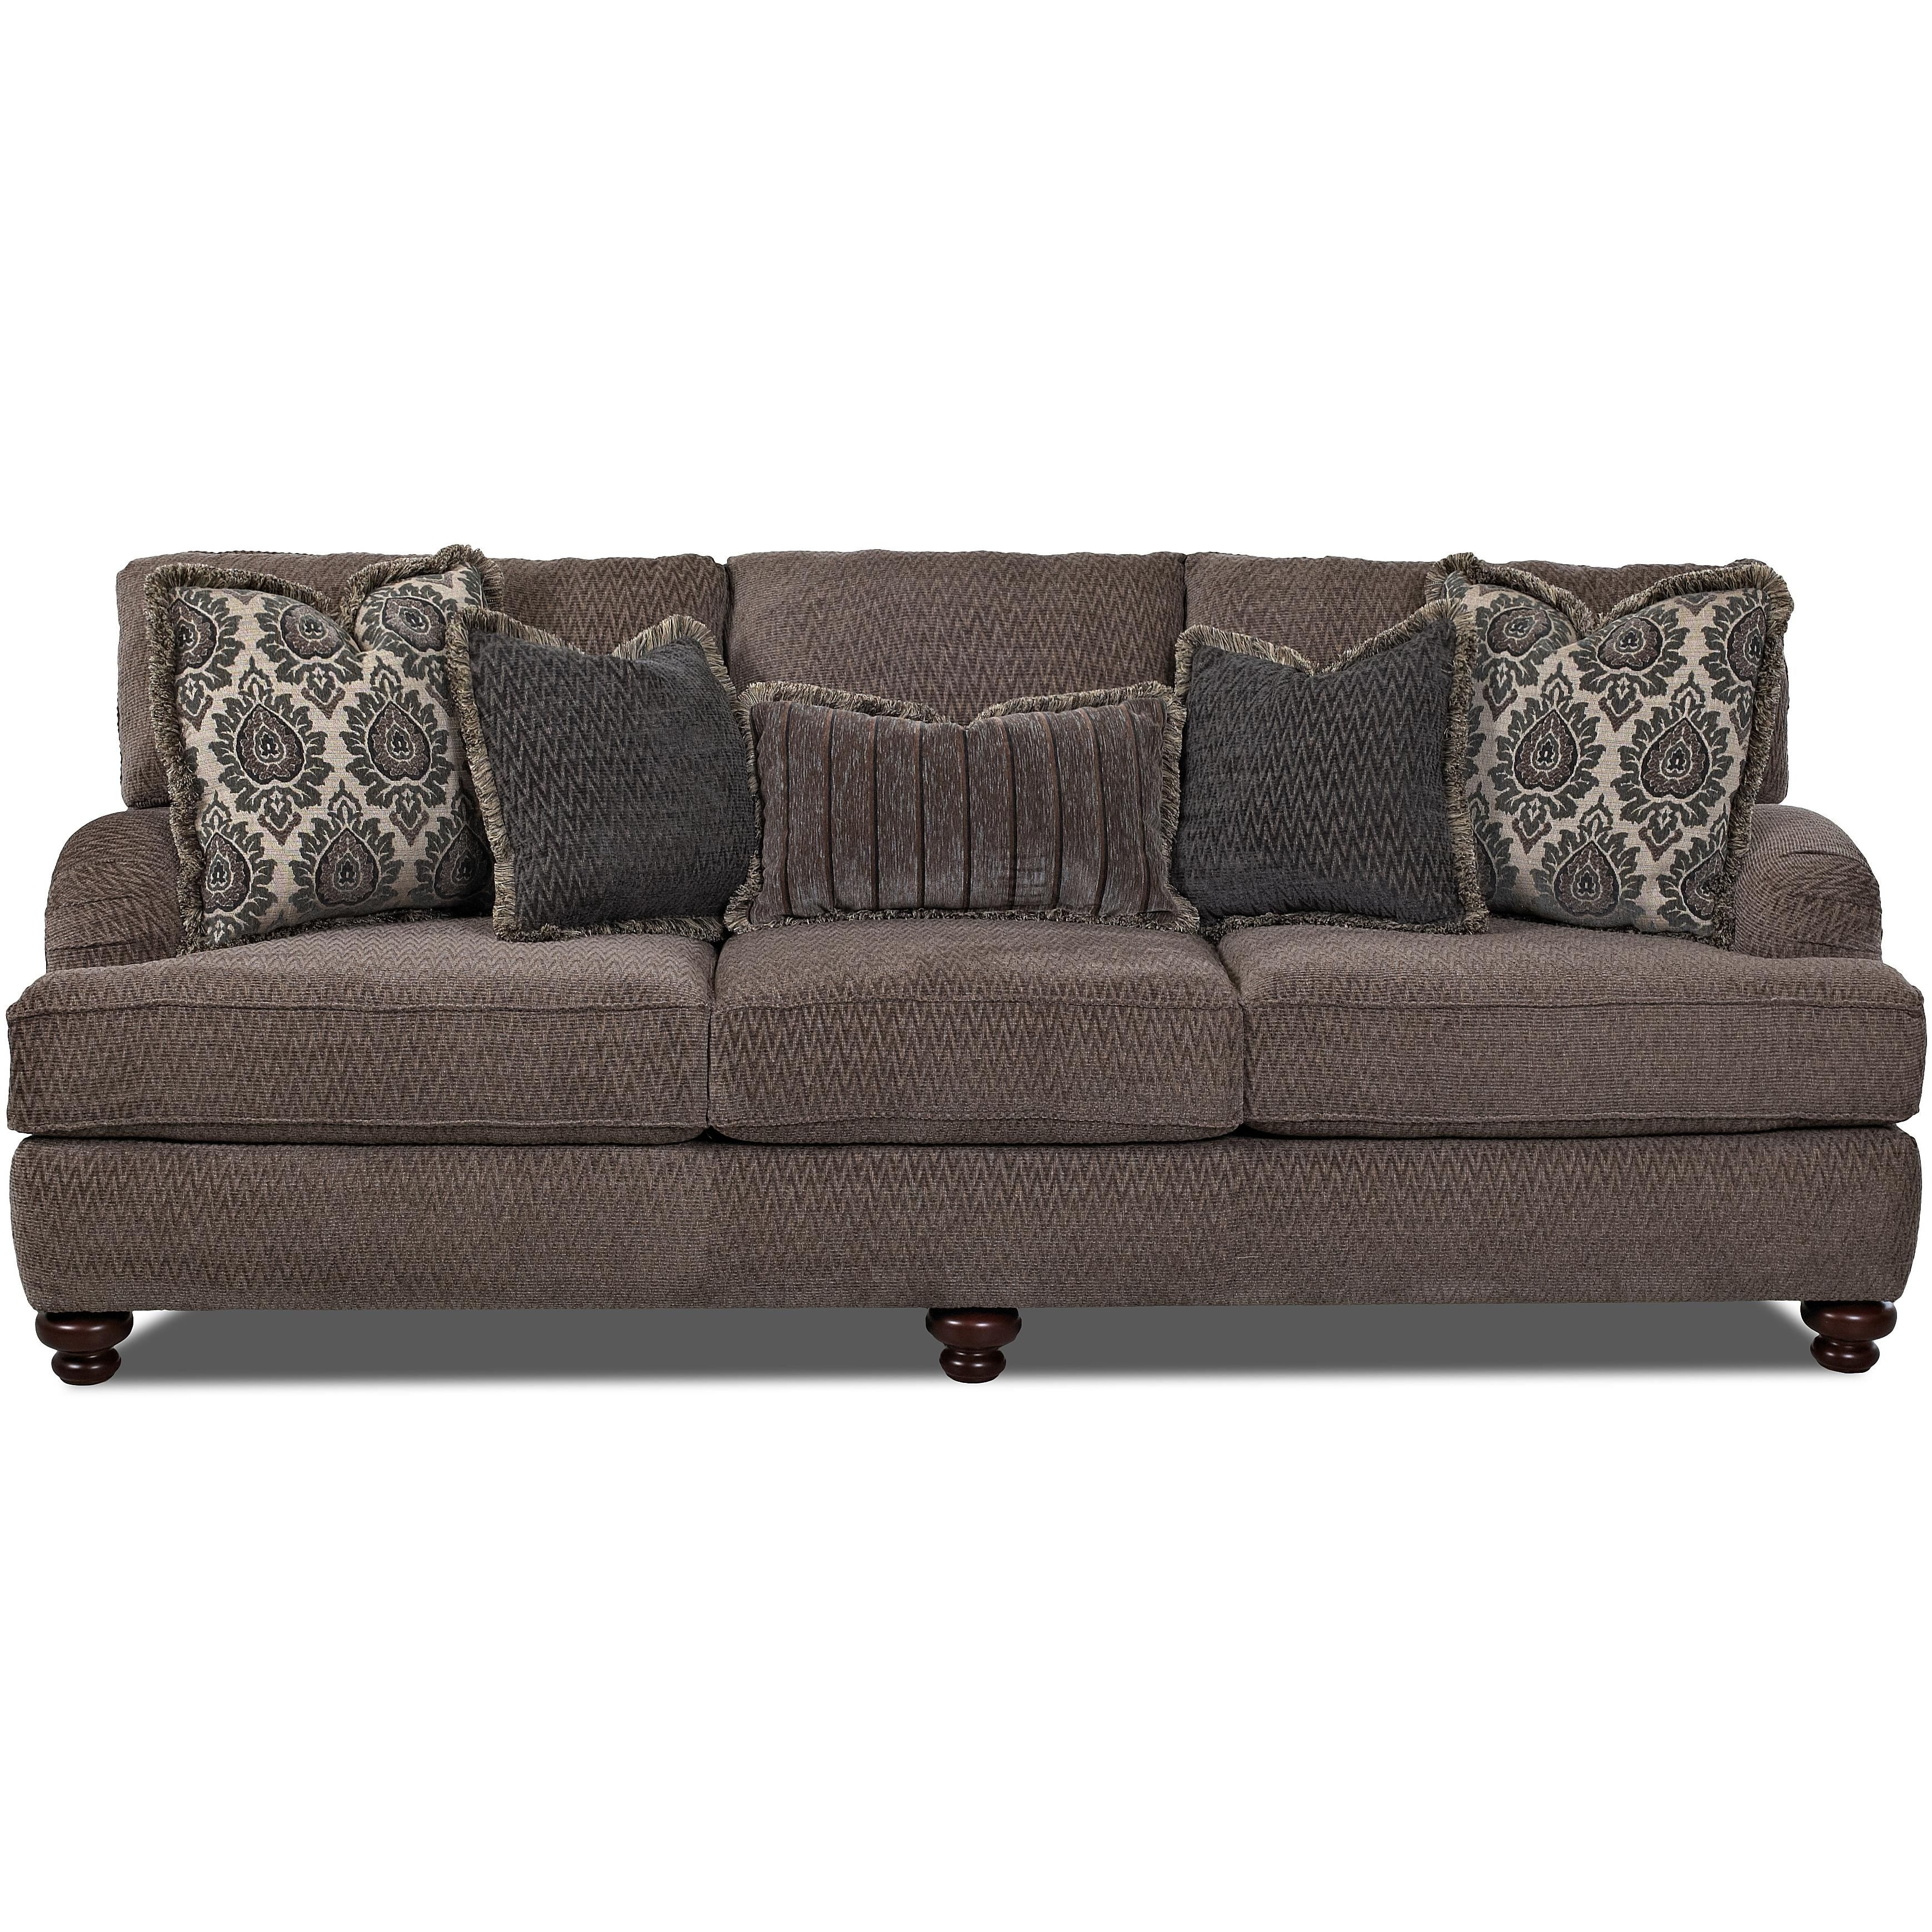 Pinlynea Redman On Living Room | Pinterest | Traditional, Living Within Declan 3 Piece Power Reclining Sectionals With Left Facing Console Loveseat (Image 22 of 25)